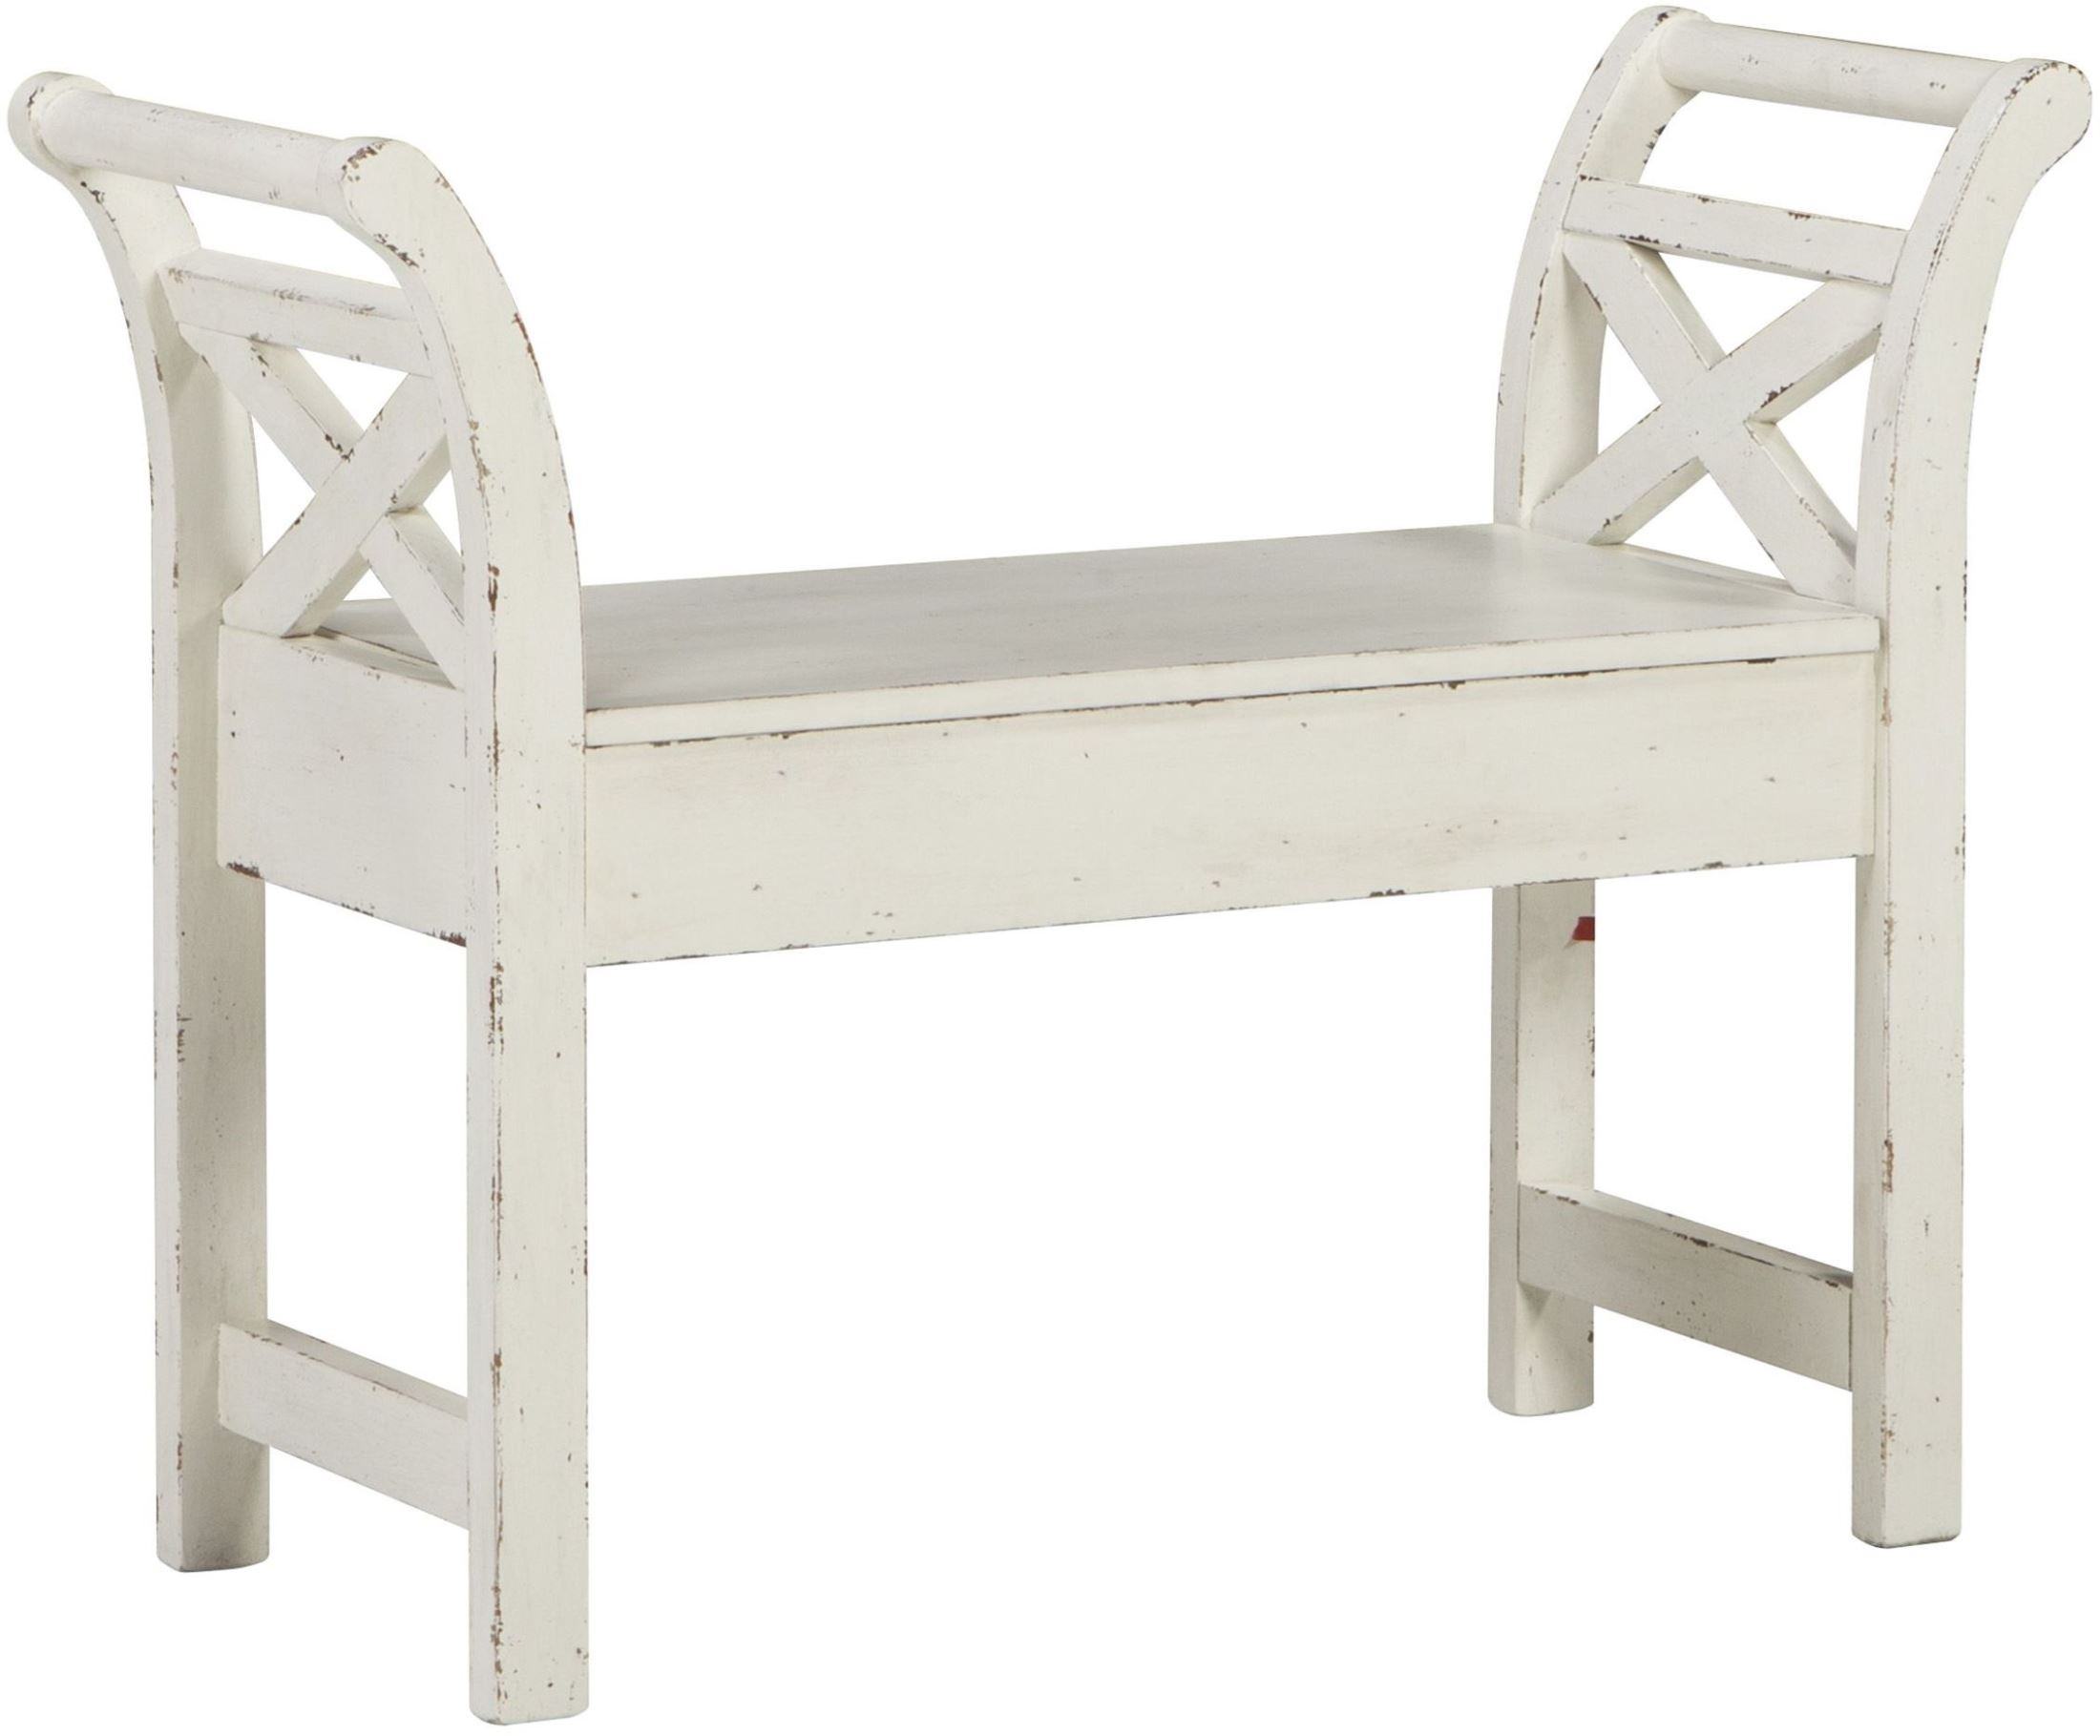 Heron Ridge White Accent Bench from Ashley